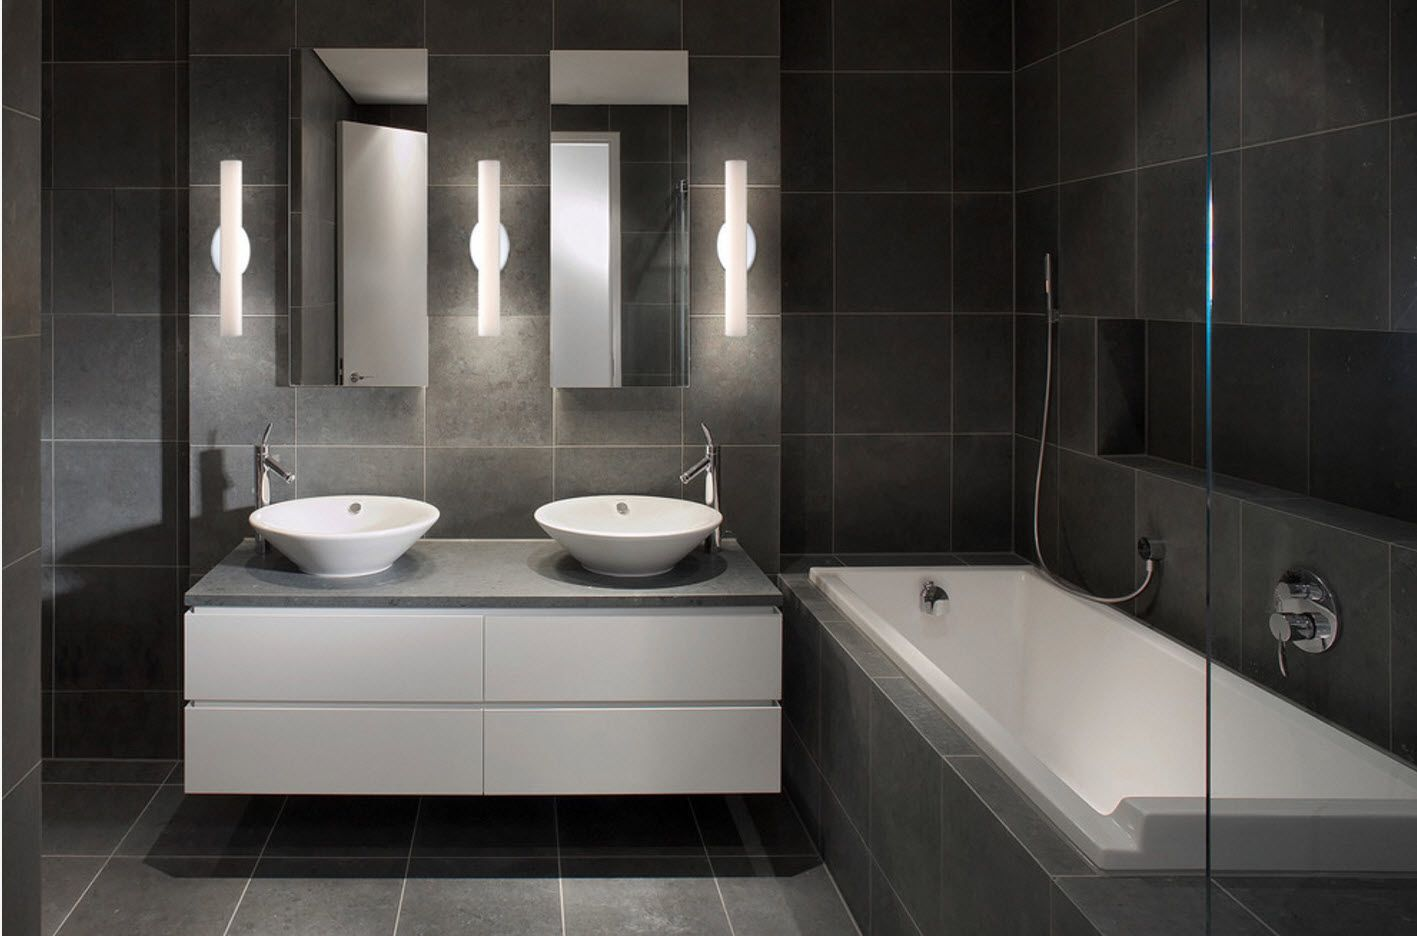 Dark gray marble surfaces in the dull designed bathroom